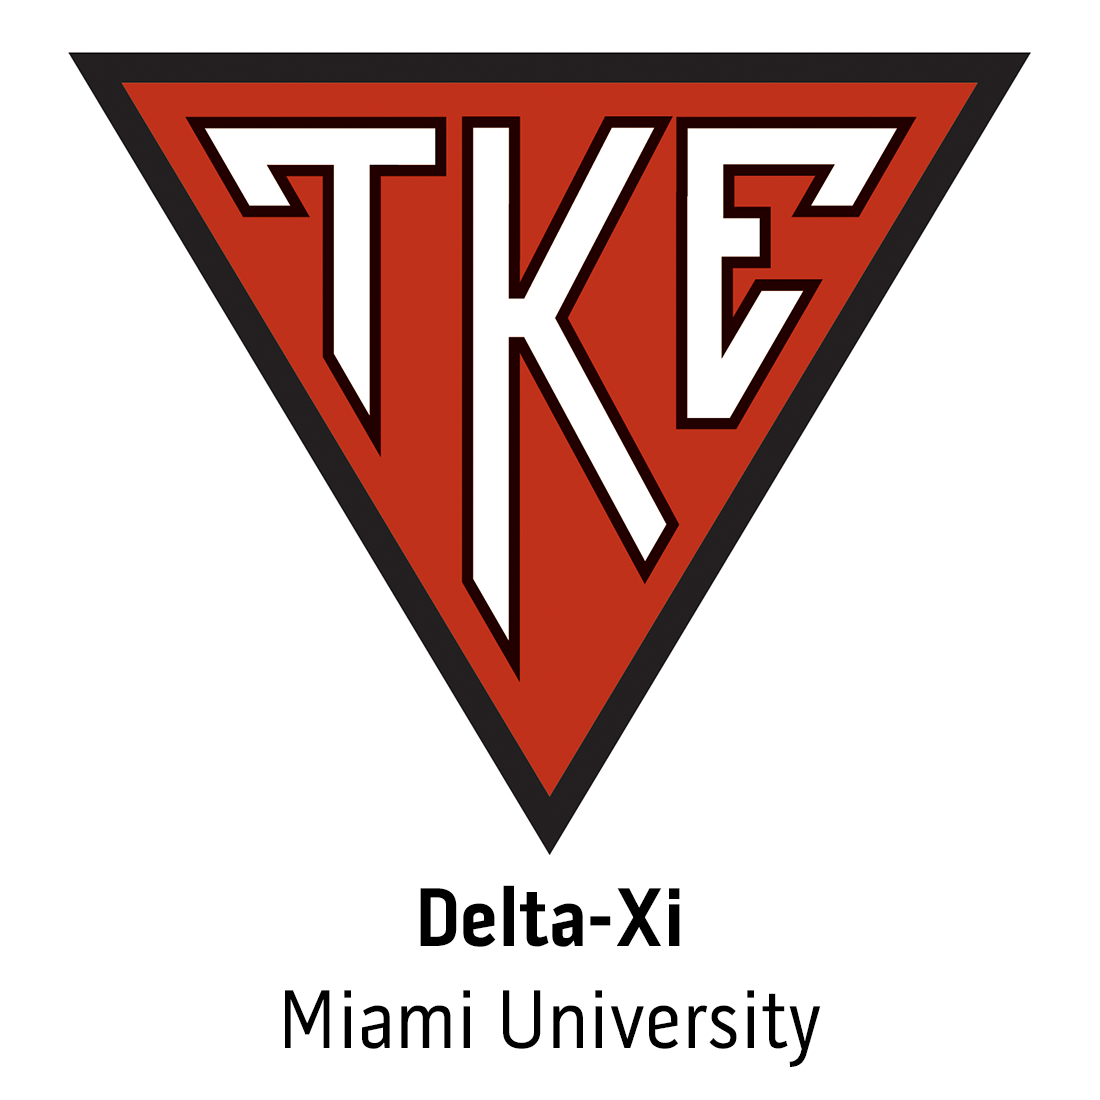 Delta-Xi Chapter at Miami University